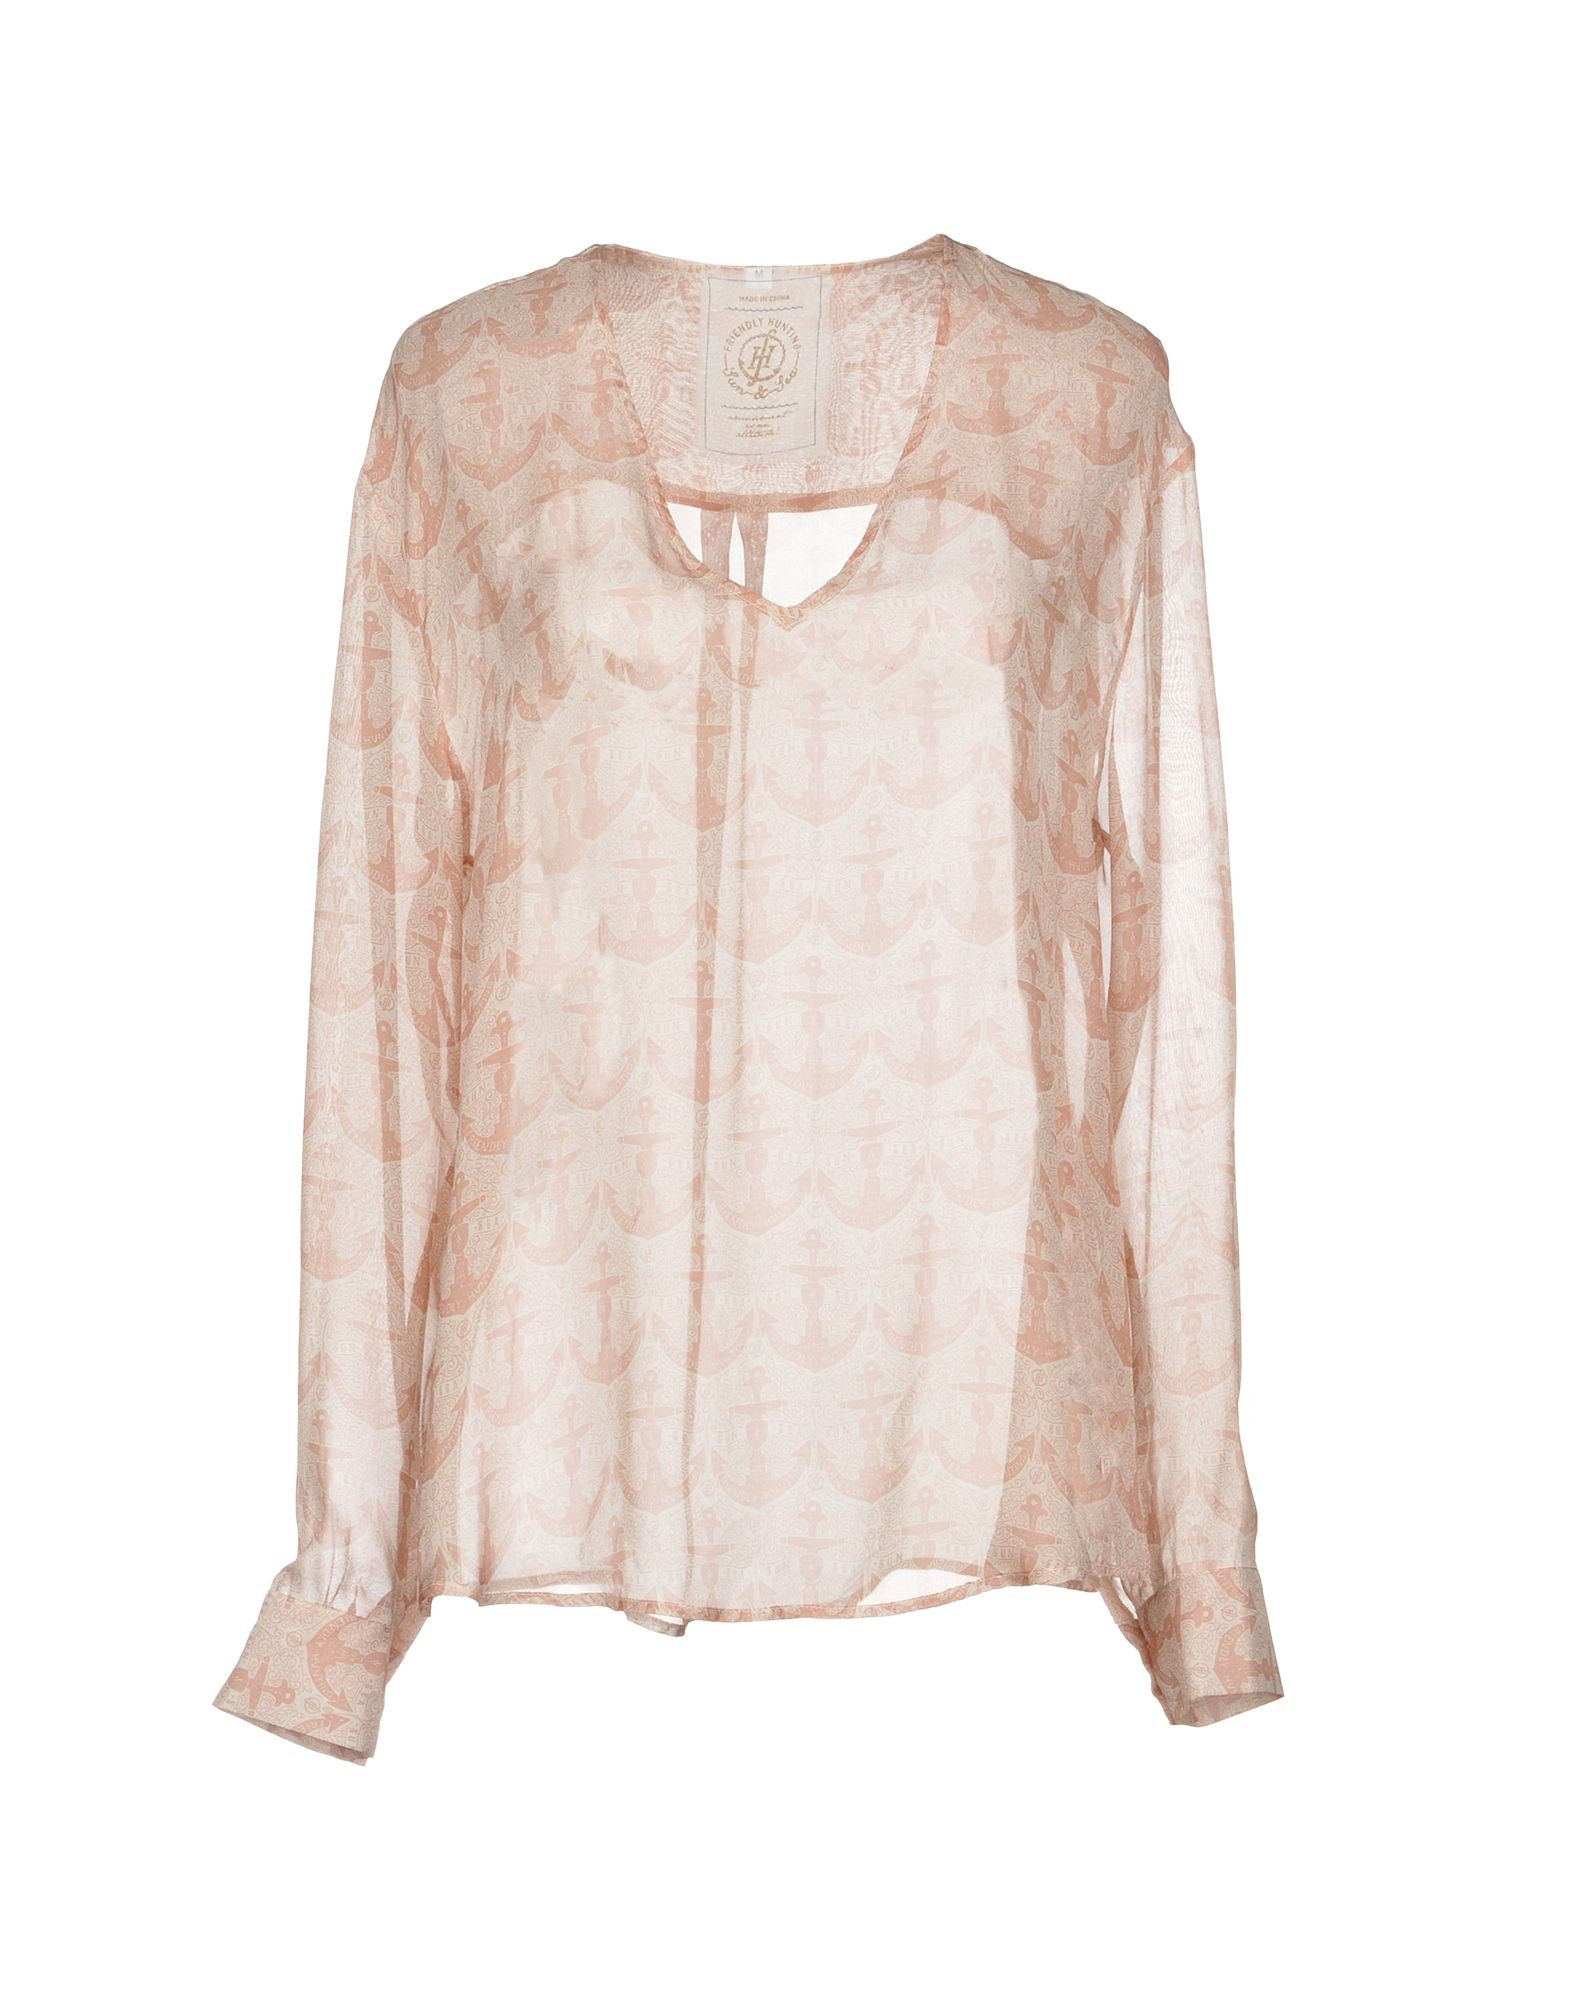 FRIENDLY HUNTING Blouse in Pale Pink